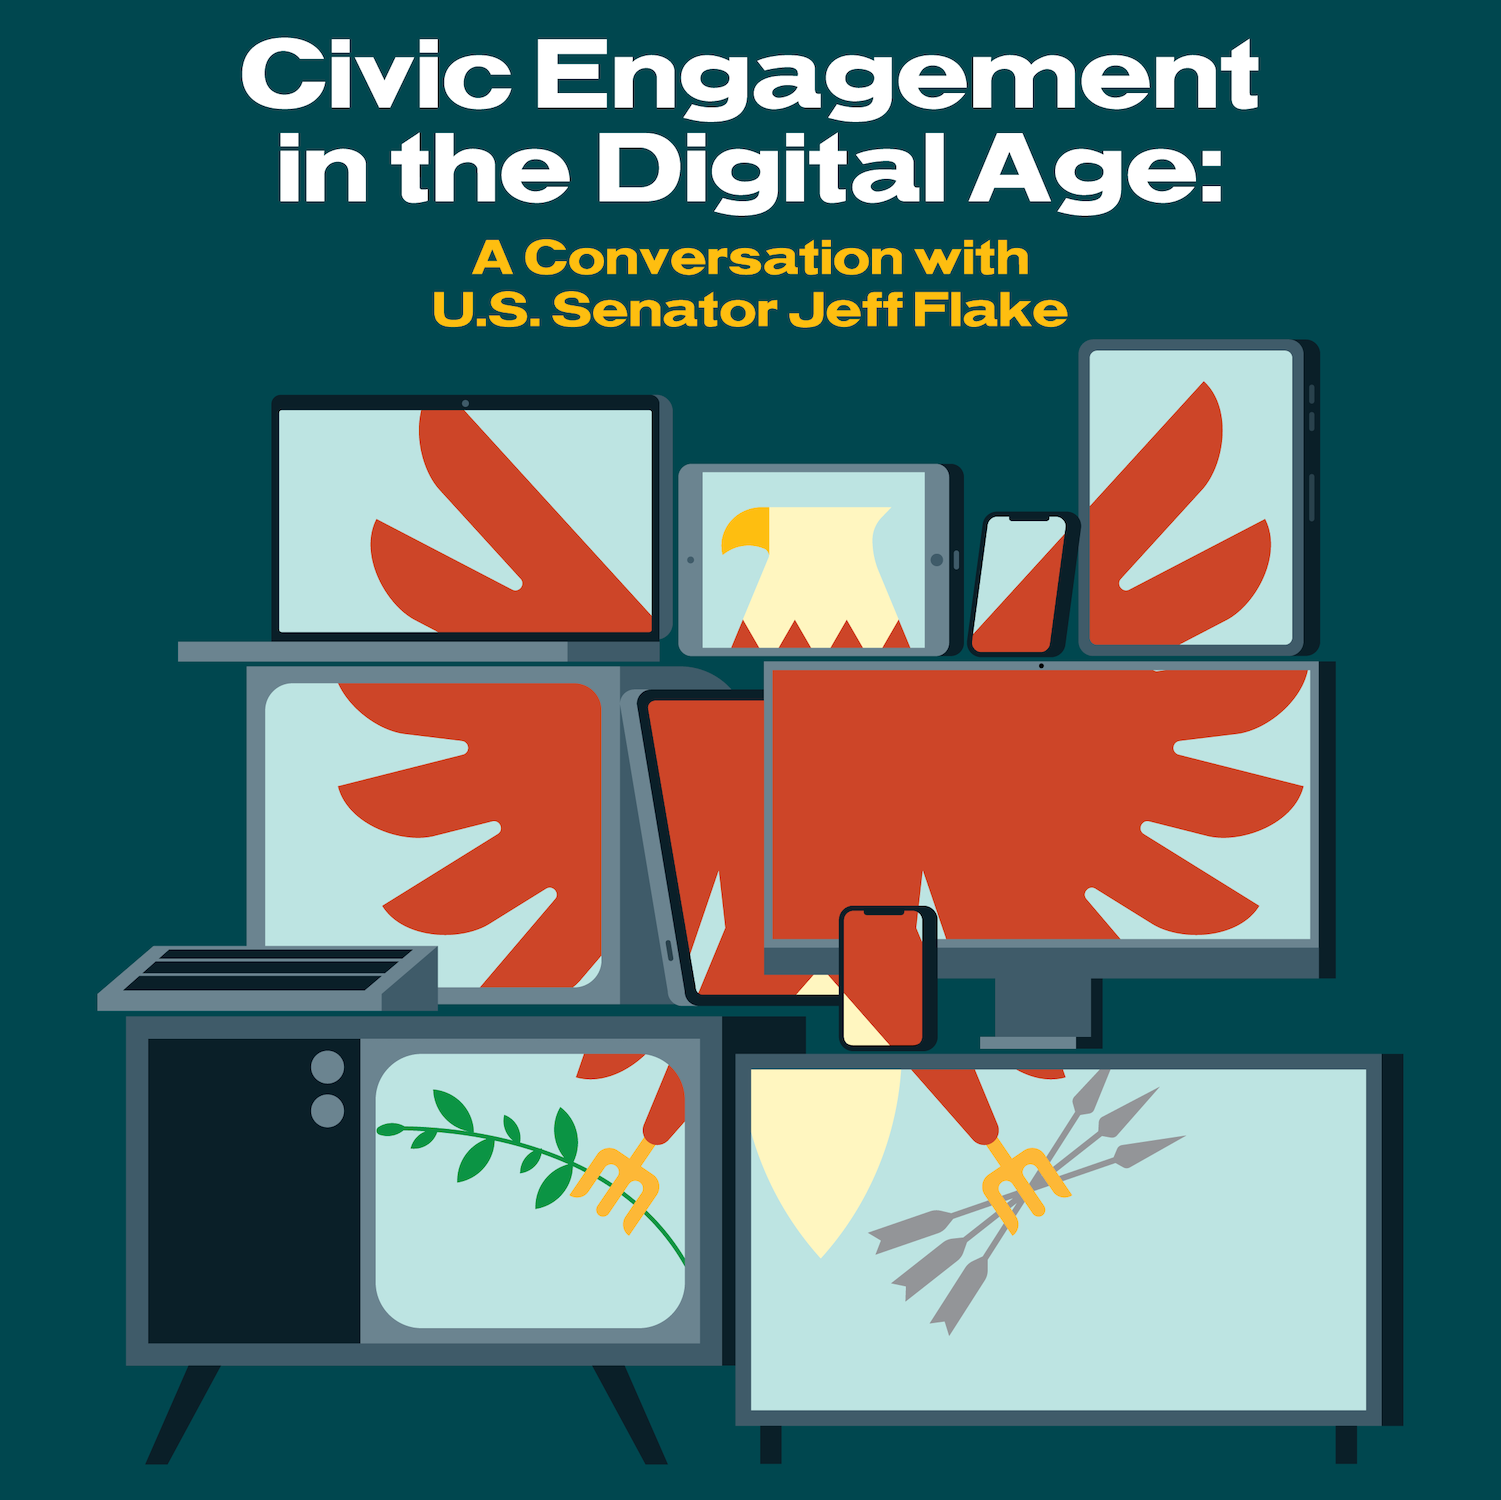 Civic Engagement in the Digital Age: A Conversation with U.S. Senator Jeff Flake